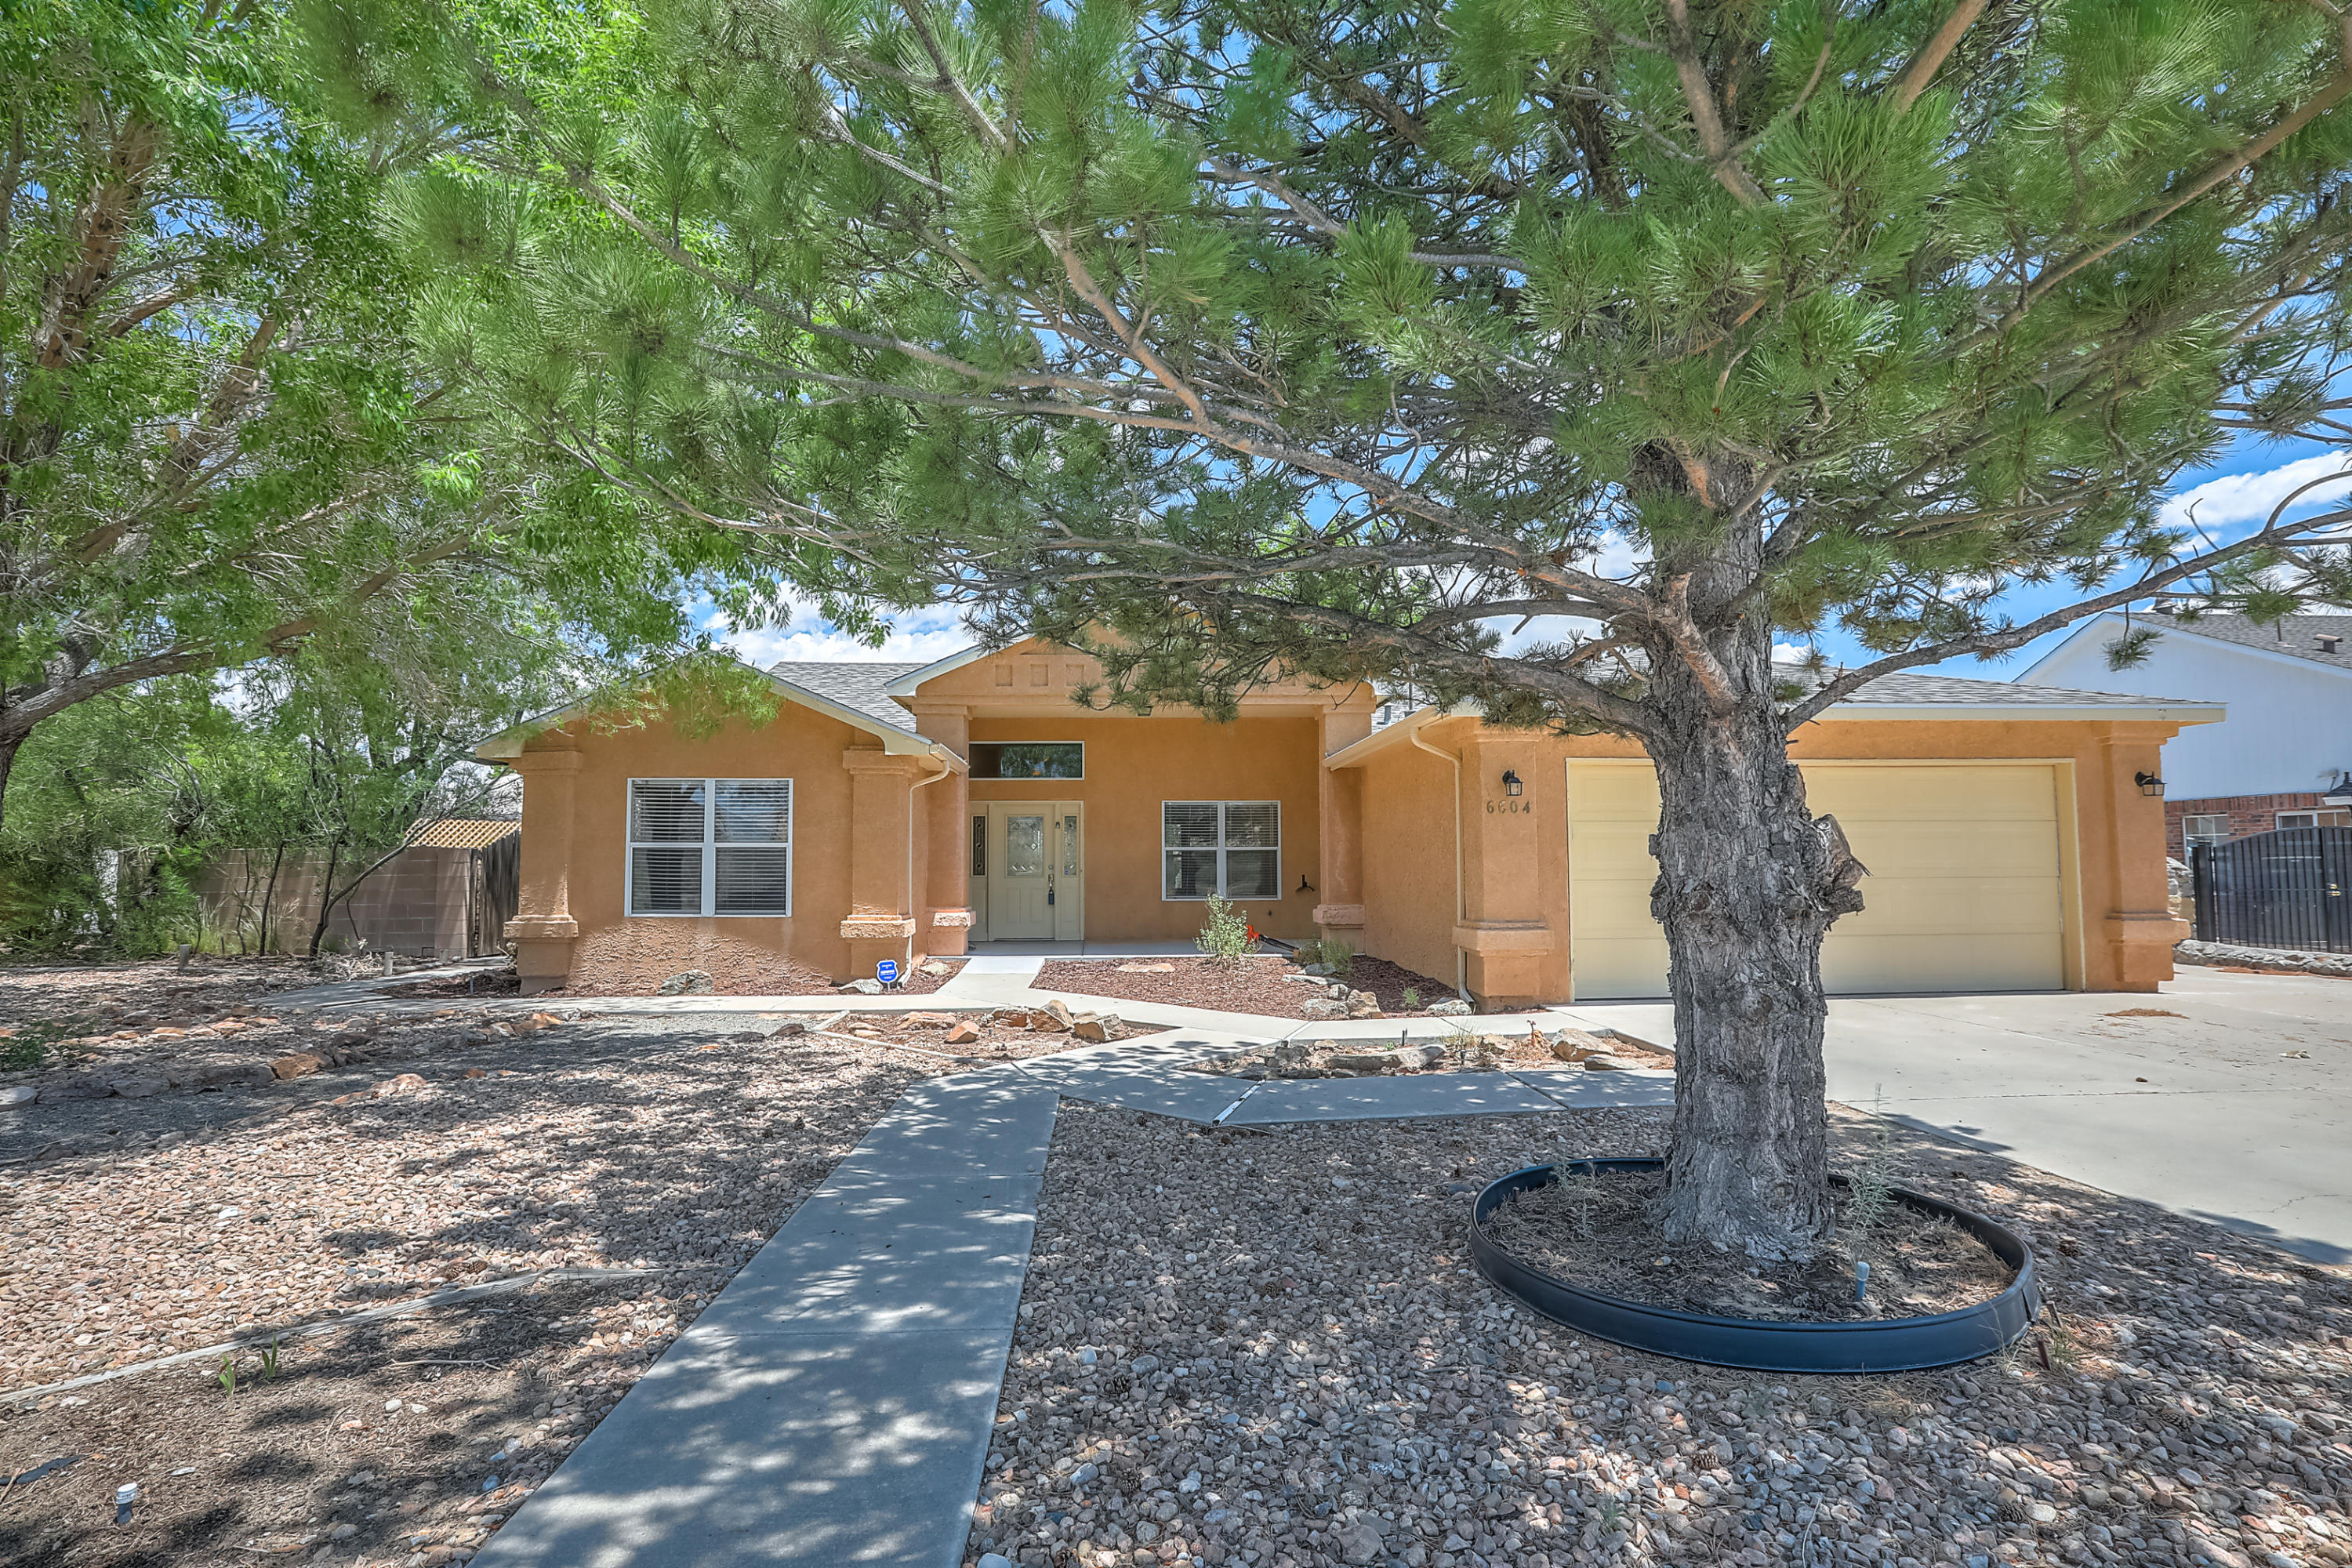 Welcome Home! This beautiful well maintained home on a large corner lot in an established neighborhood with big trees. This home is across from the Petroglyphs with hiking and trails. As you enter the home through the large front covered patio into the entry way to the left you have an over size dinning area with plenty of entraining space. Open concept with the kitchen, breakfast nook and living room. In the living room enjoy the easy low maintenance gas fire place. Master bedroom has a walk in closet and master bathroom with separate tub and shower. 3 more spacious rooms; all rooms with ceiling fans. A great sunroom for plants or extra space for relaxing. Large backyard with grass, water feature and side yard access. Come by Today.